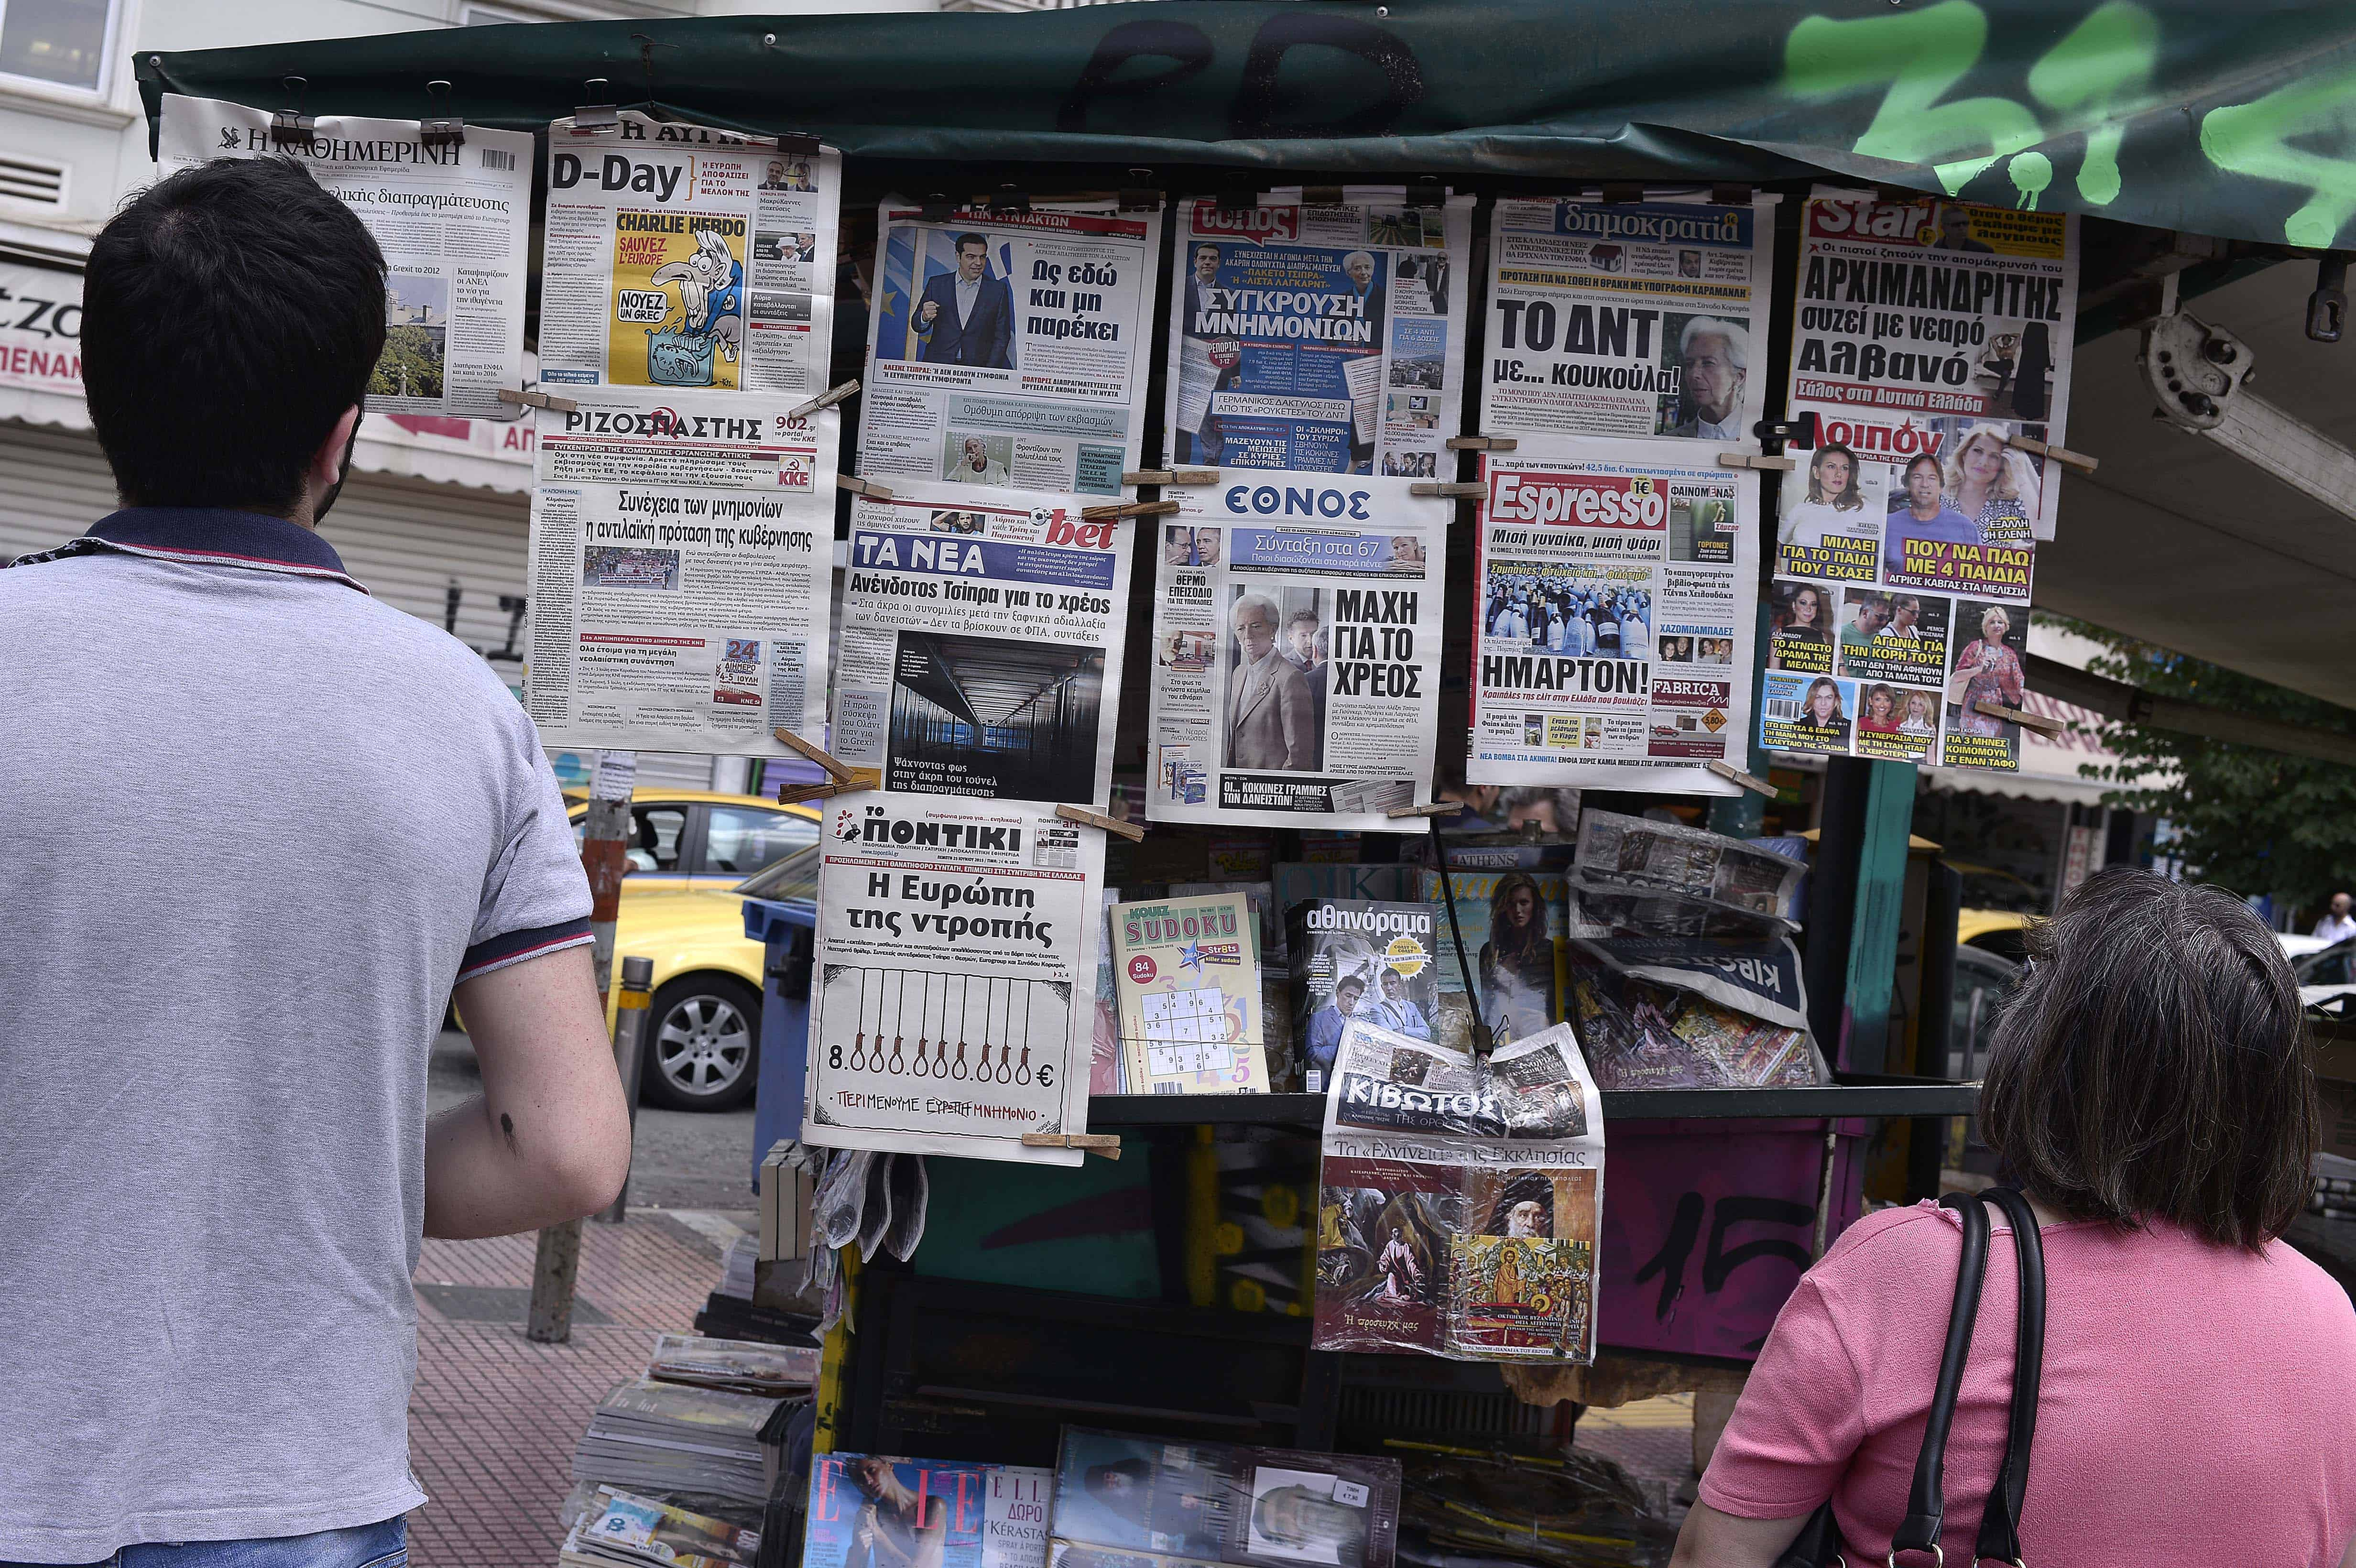 Onlookers view newspaper headlines in central Athens on June 25, 2015.